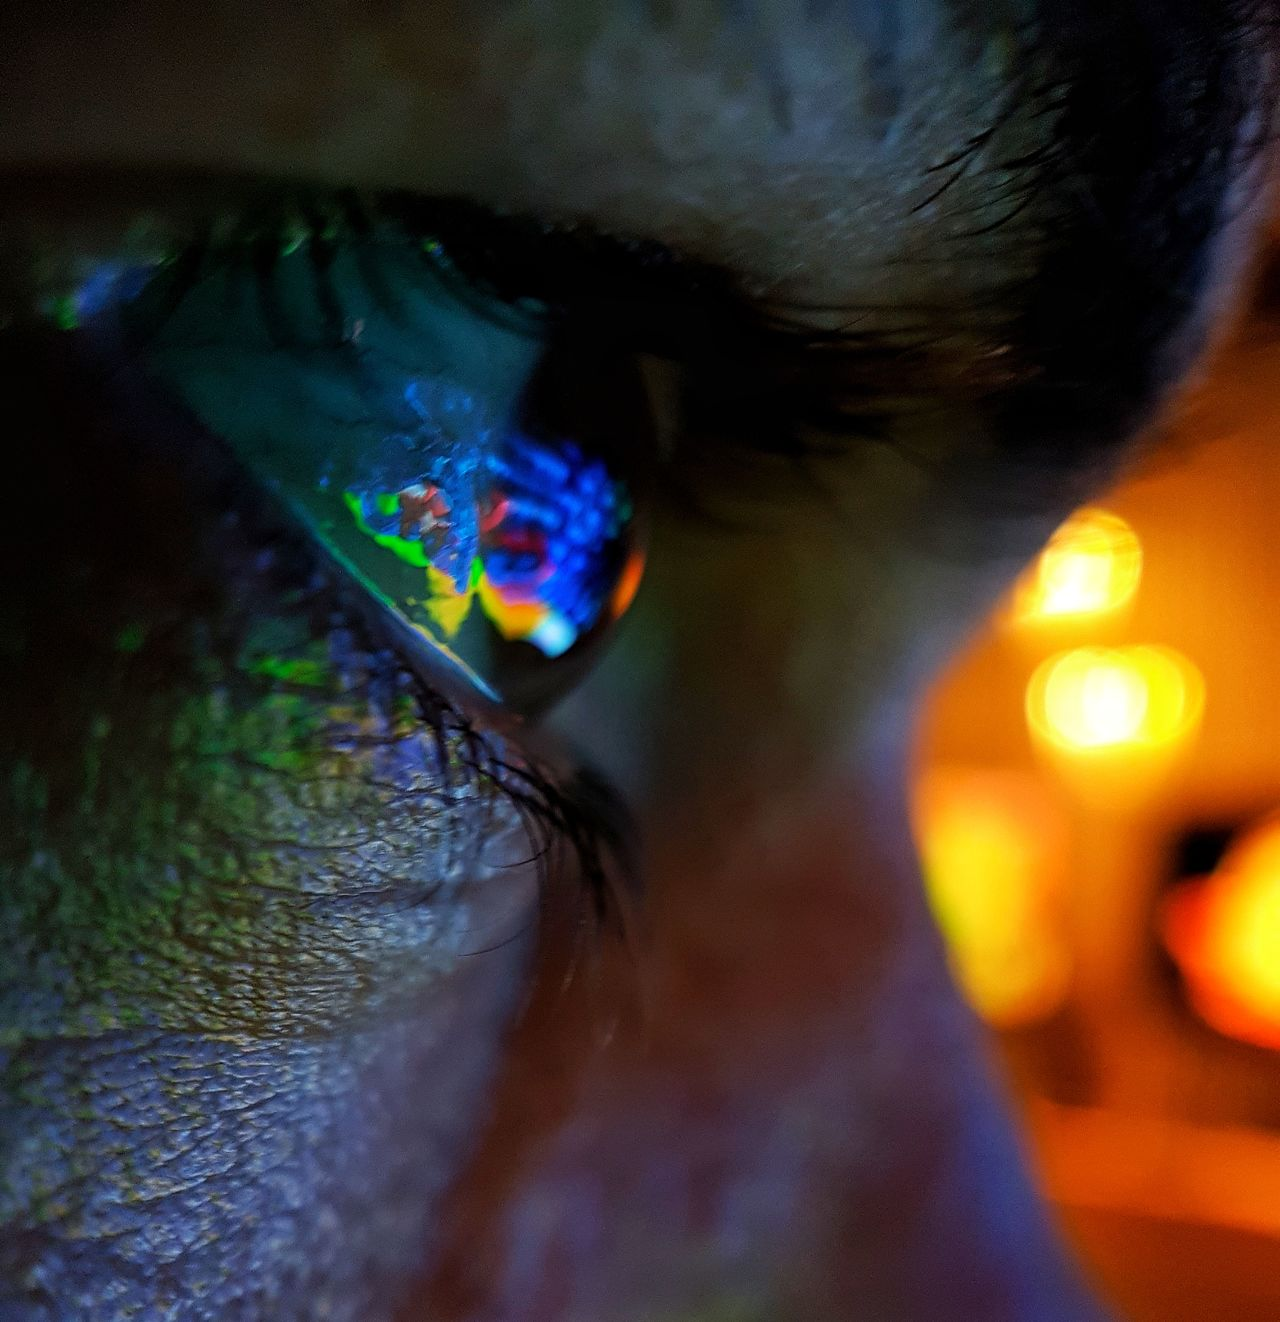 human body part one person illuminated close-up multi colored people indoors Adult night Adults Only human eye eyesight only women young adult Colourful Macro Beauty macro Beautiful The Week on EyeEm